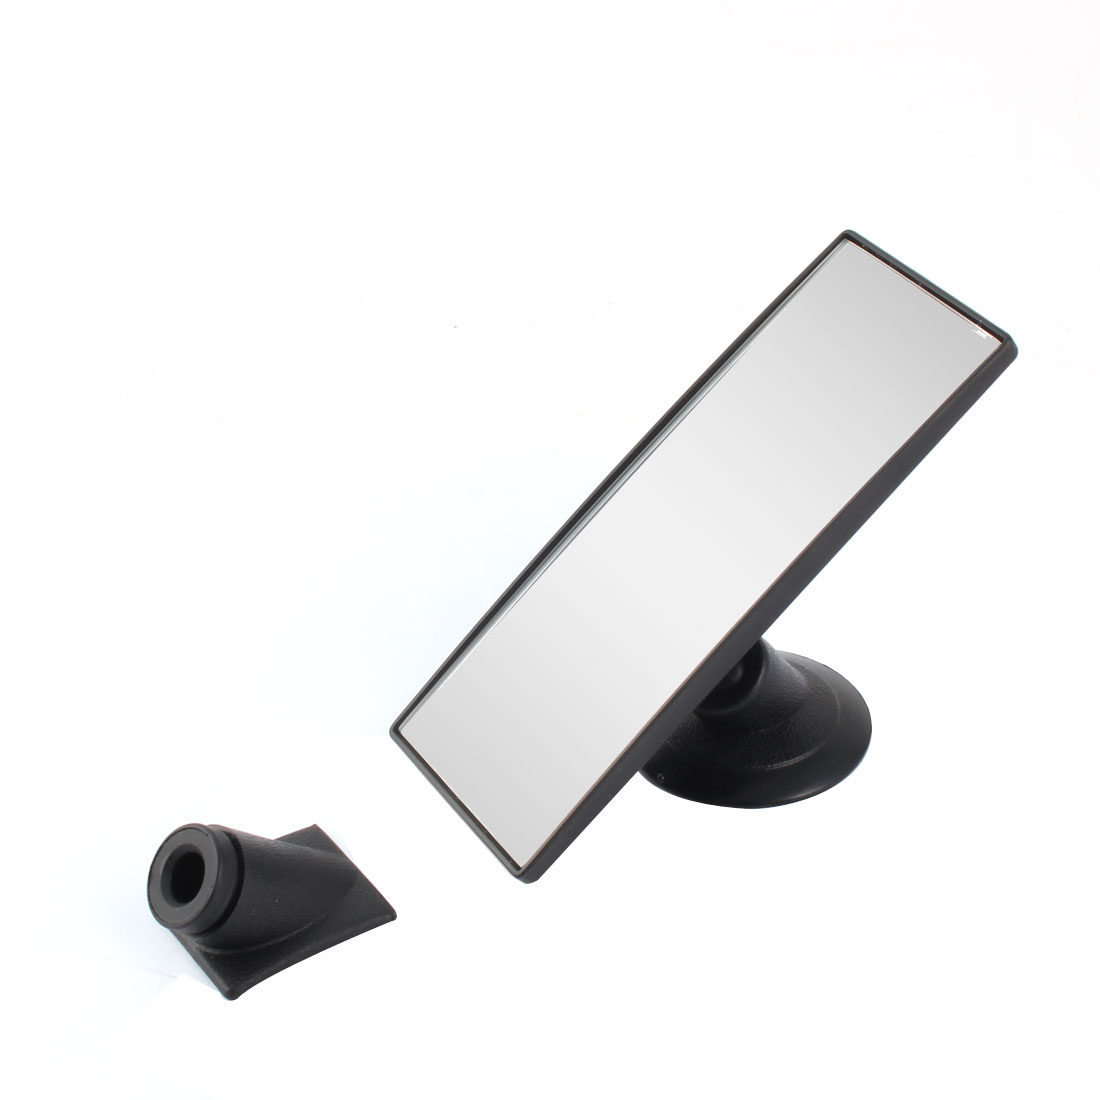 Vehicle Car Interior Free Angle Convex Rear View Blind Spot Mirror 145 x 55mm Size